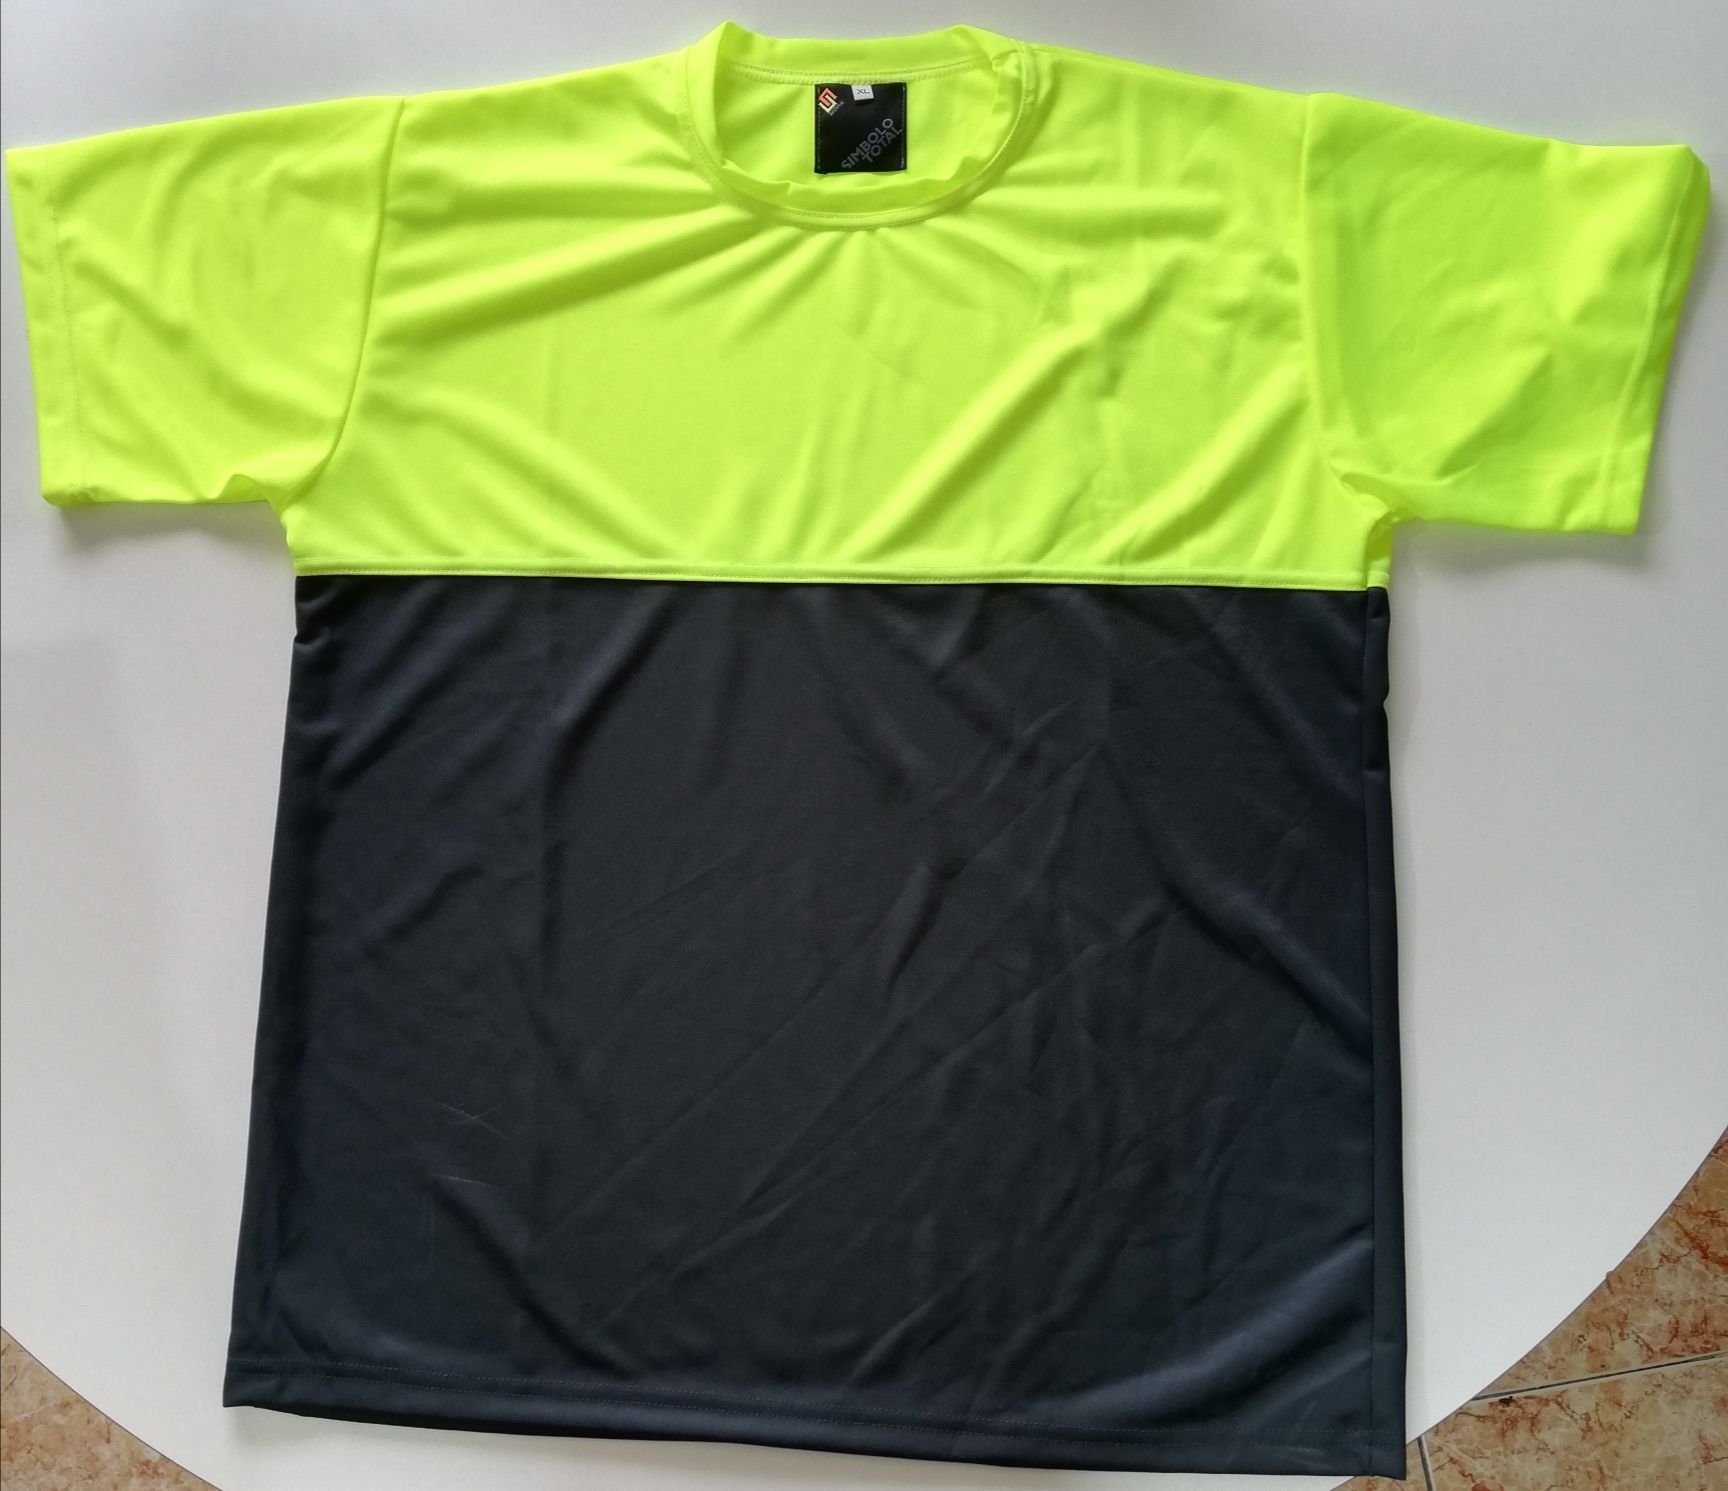 T-shirt bicolor 100% poliester - 2,50+IVA